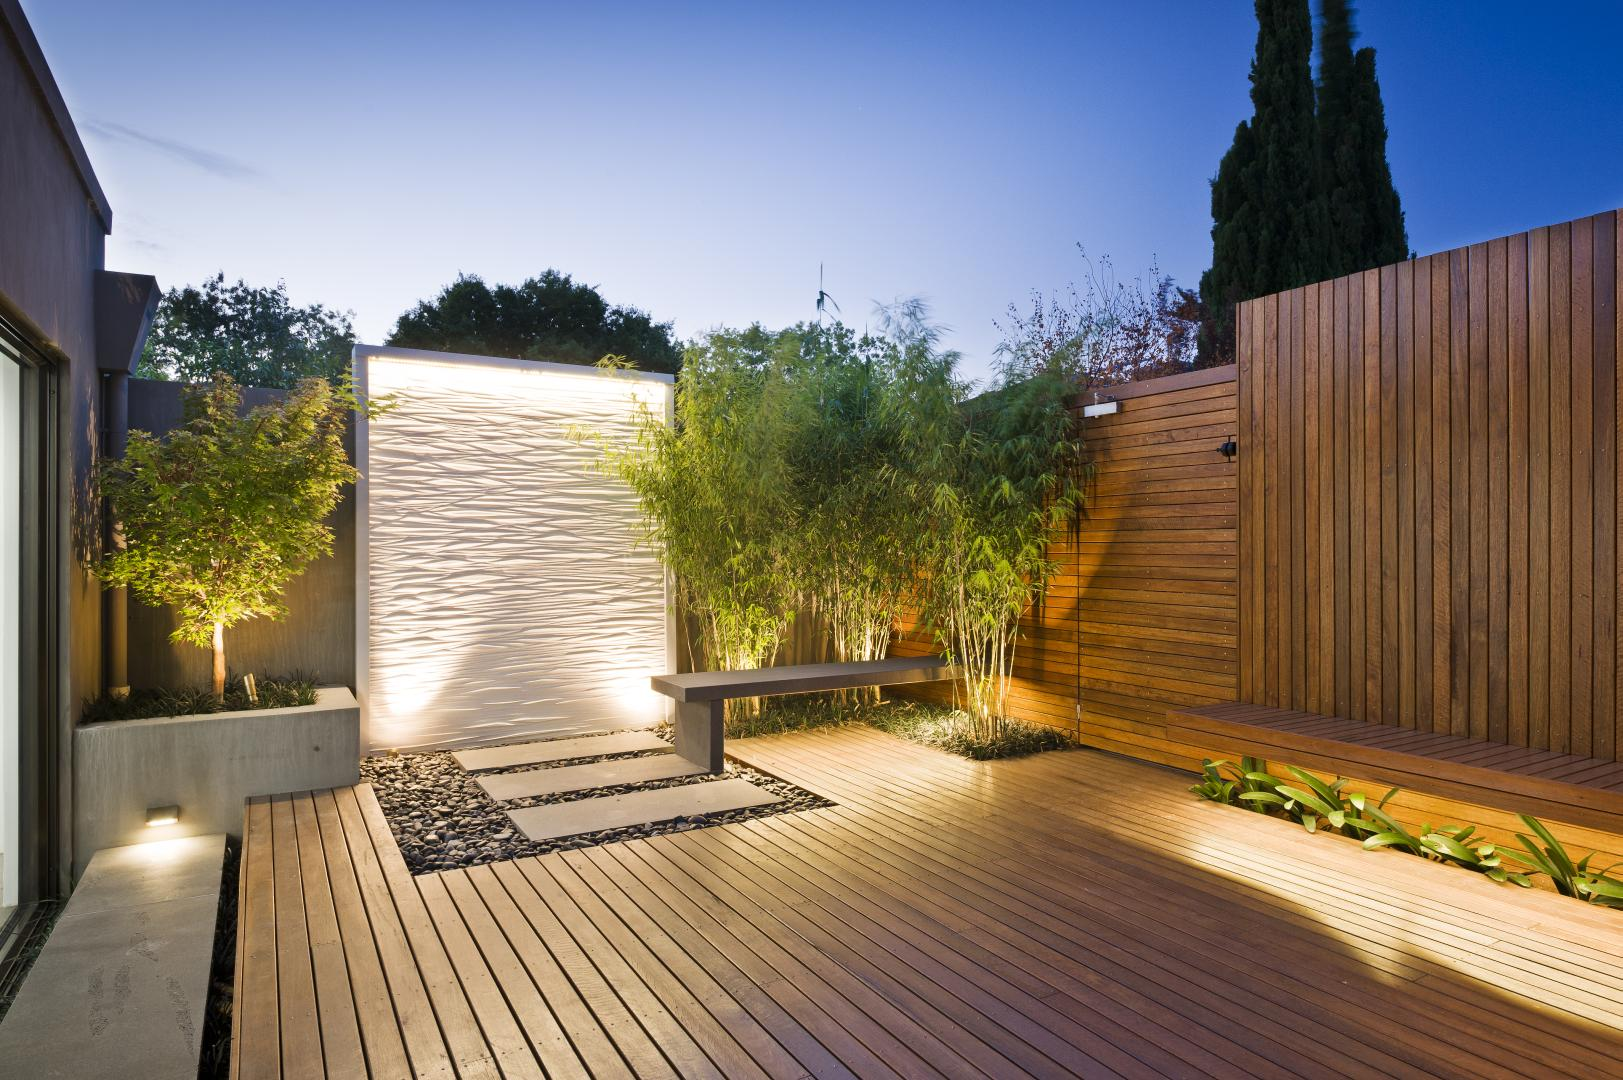 Deck lighting ideas that bring out the beauty of the space for Balcony lights